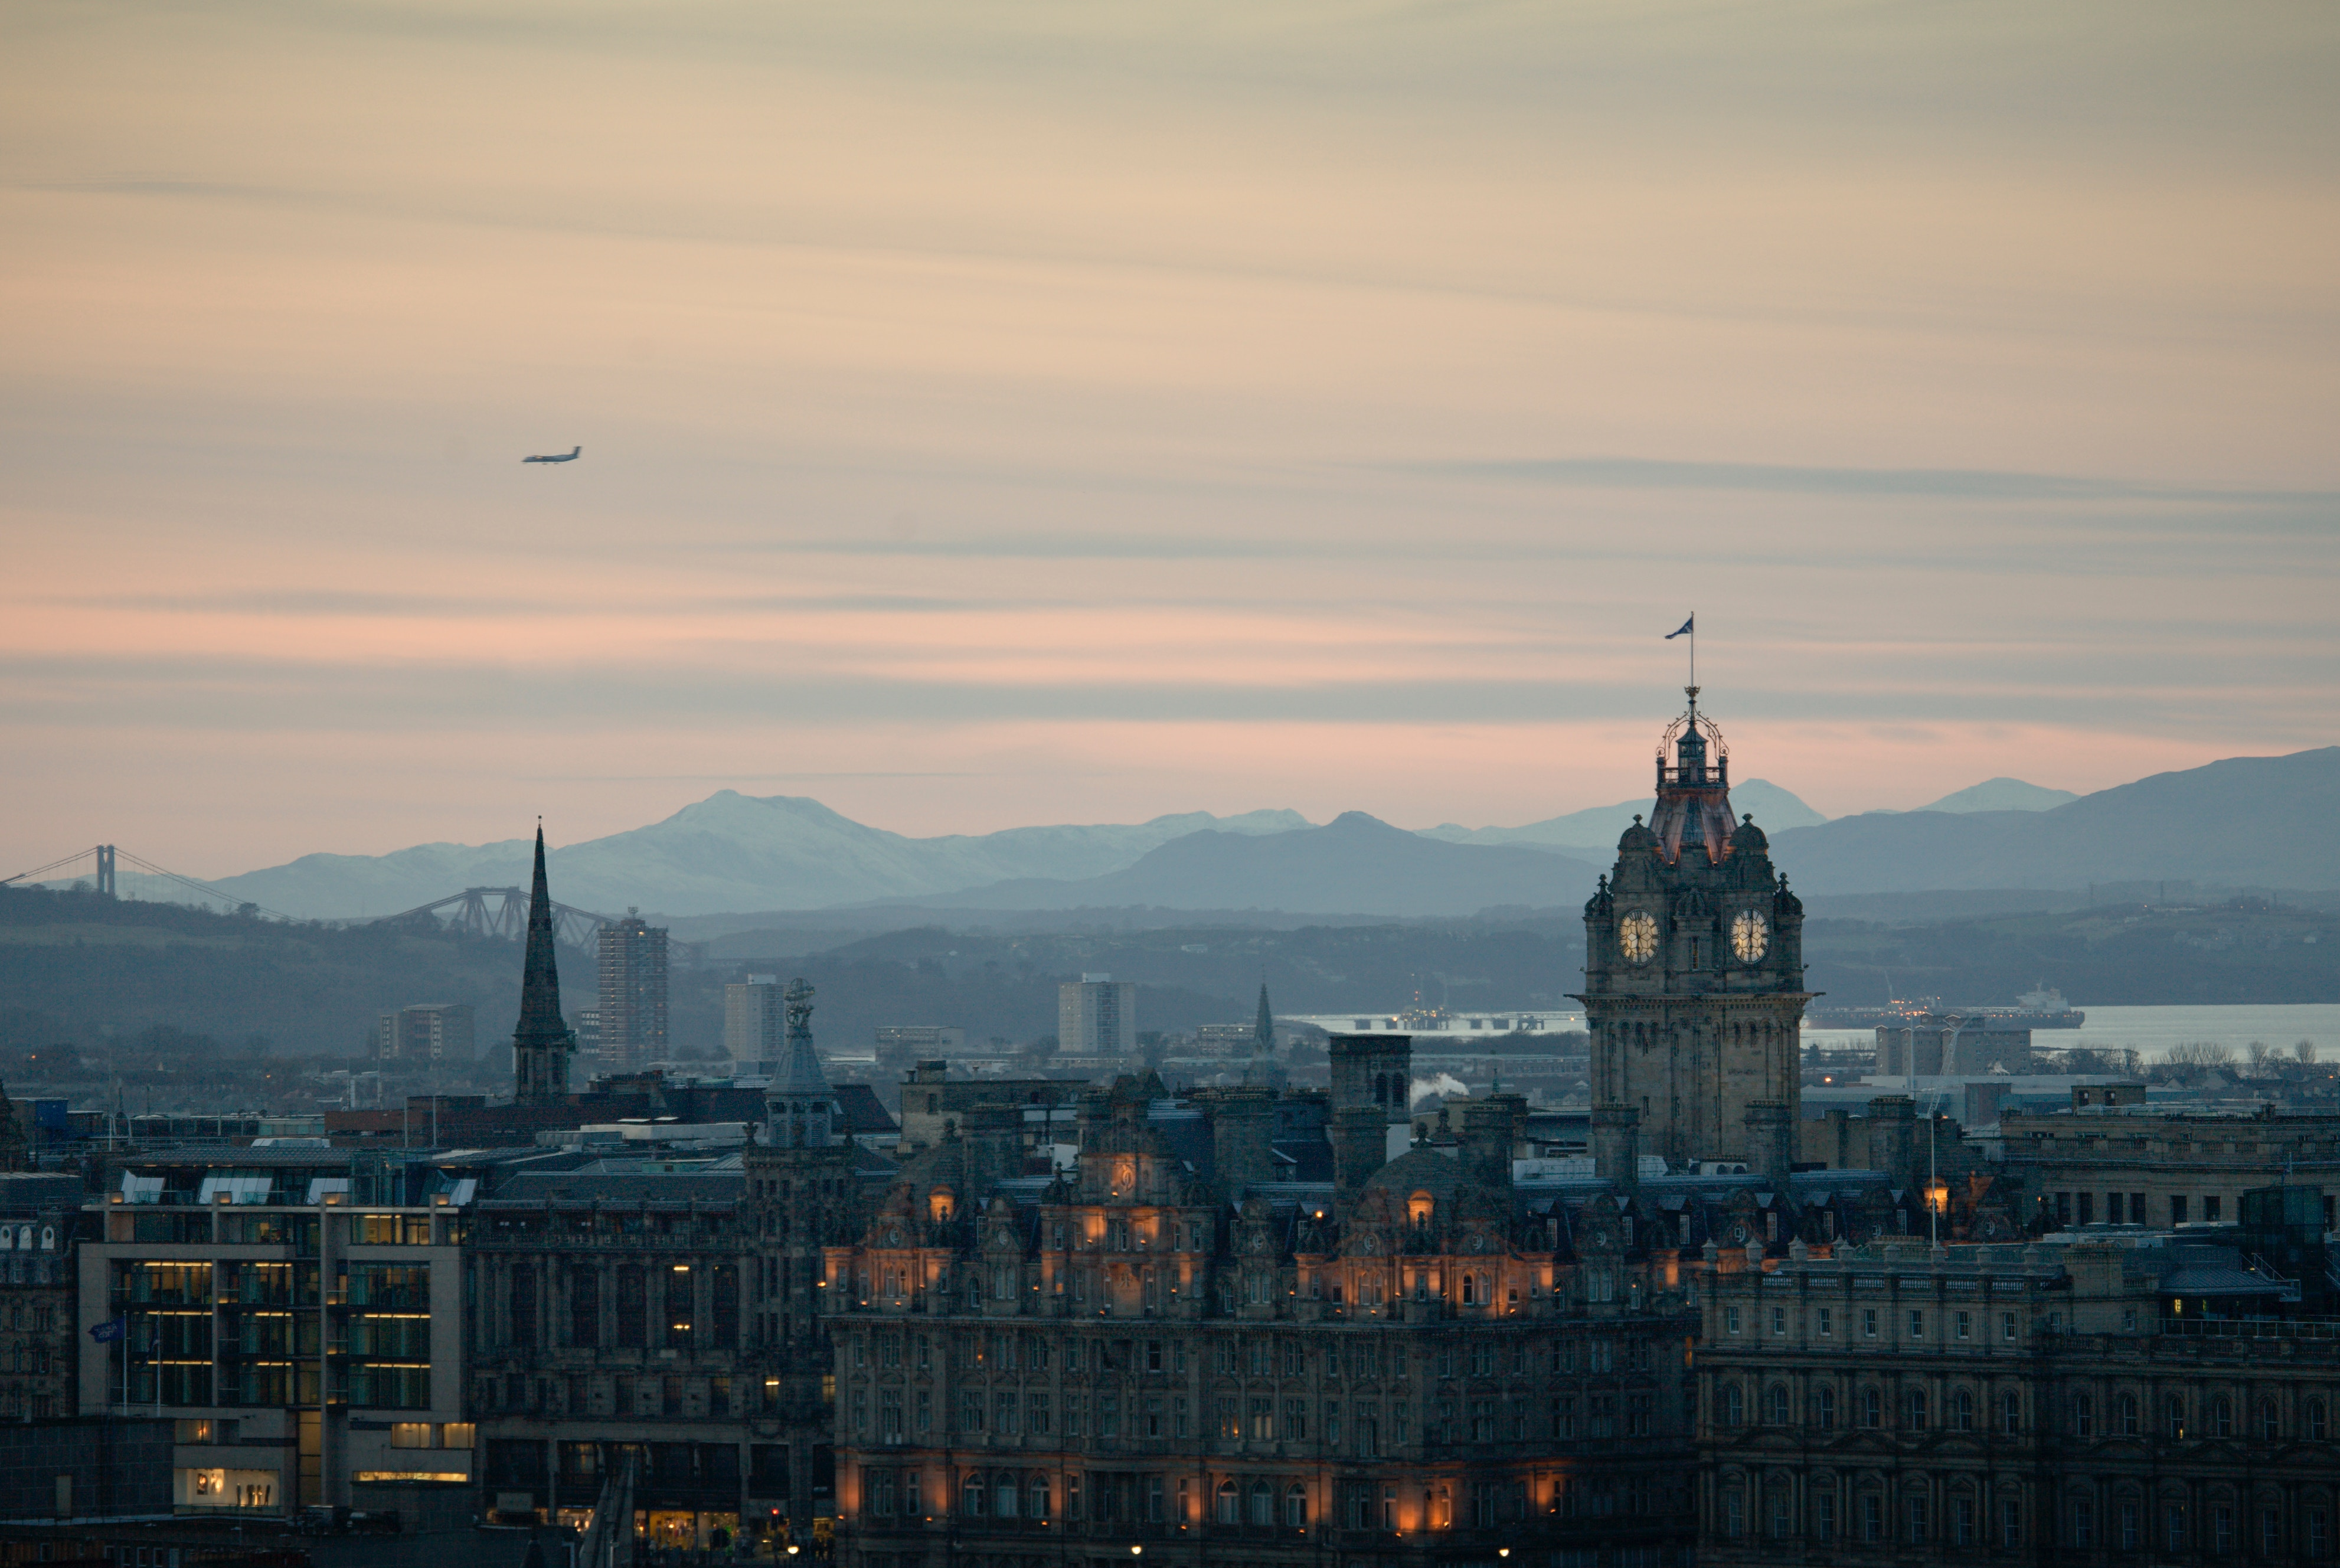 Edinburgh_joe-tree-519328-unsplash.jpg (1.45 MB)